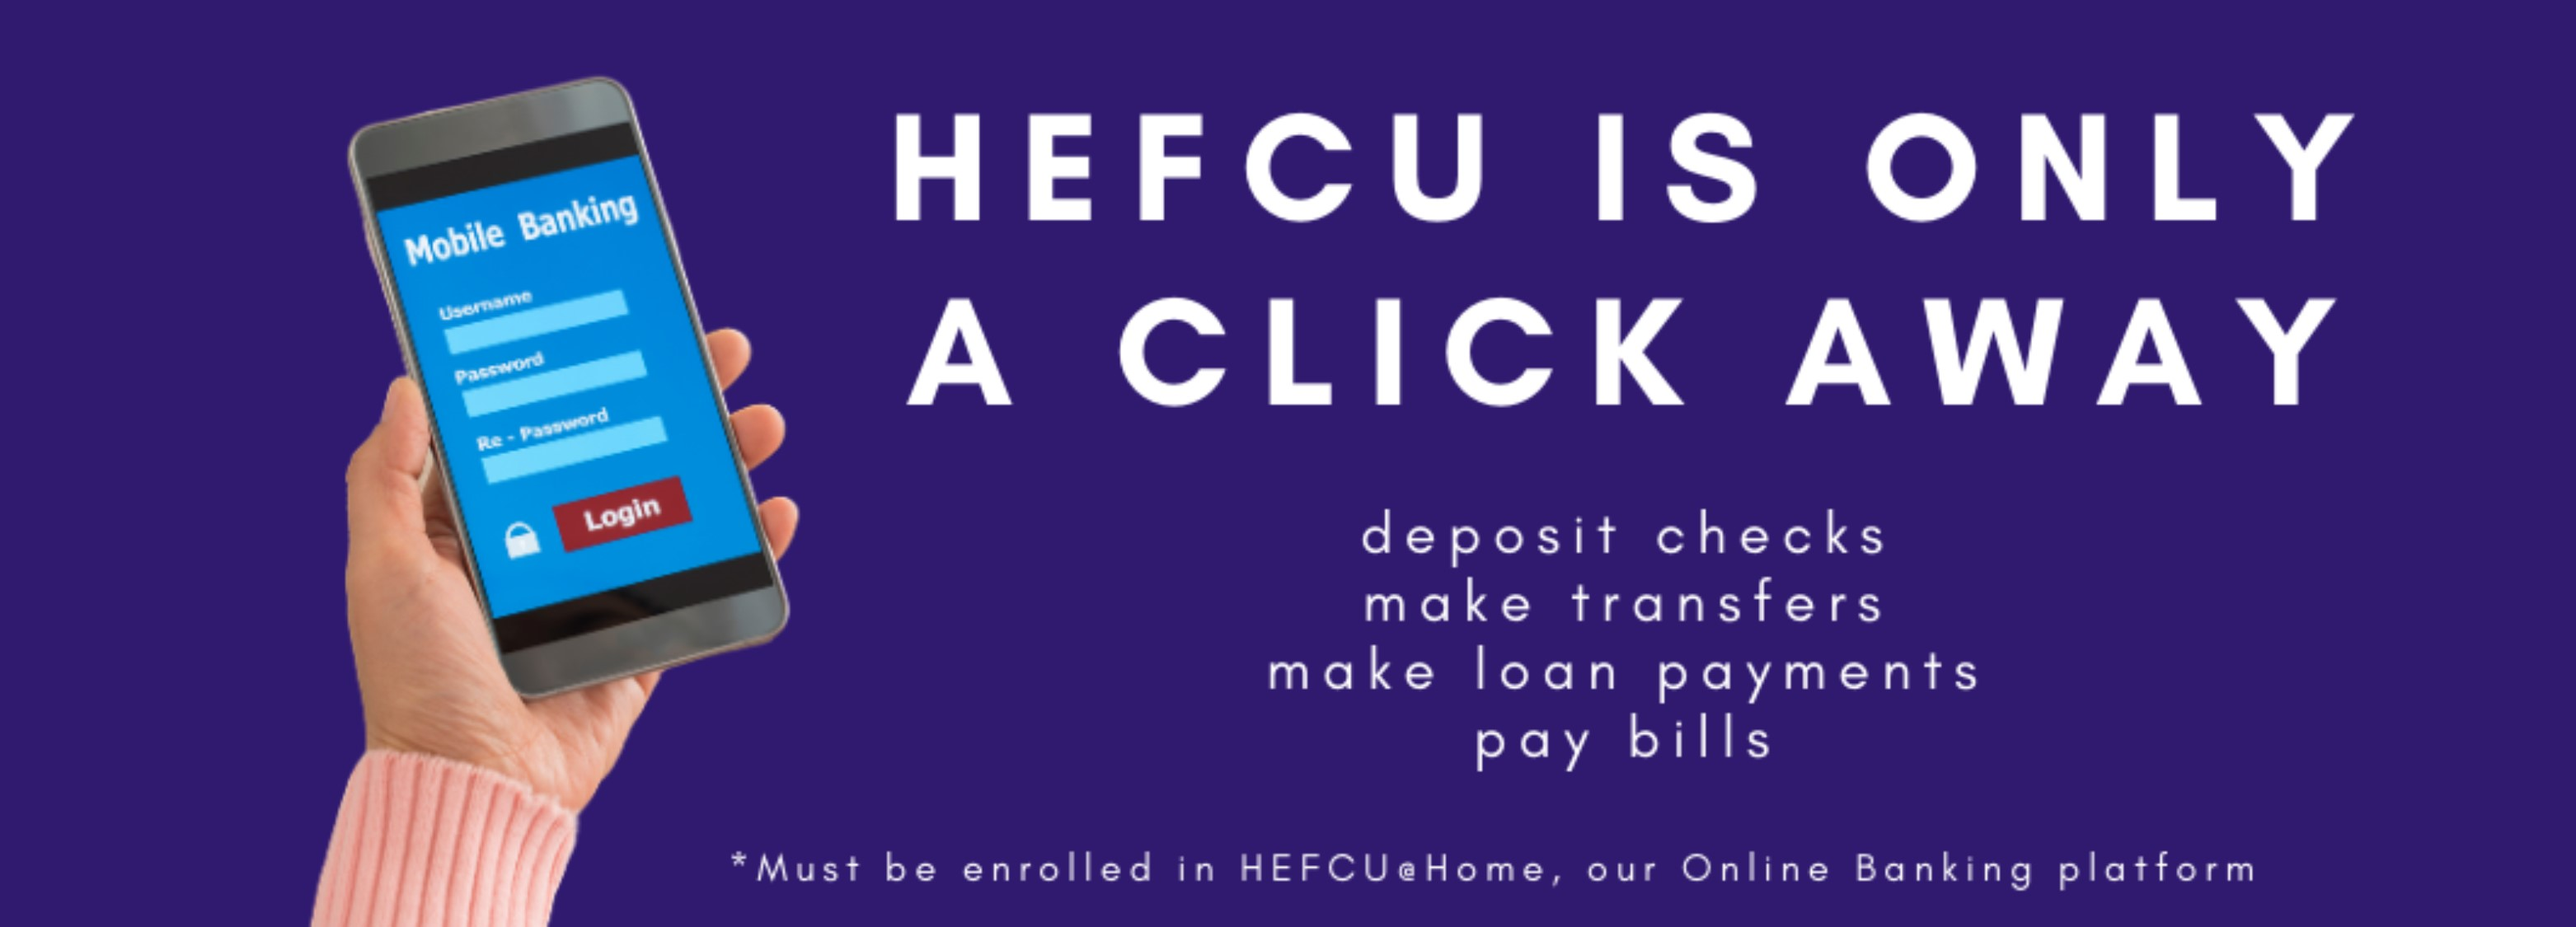 """Access to your HEFCU account is only a click away! To download the app, go to the app store on your mobile device and search for 'HEFCU Mobile"""" to begin enjoying HEFCU from the comfort of your palm. Or visit https://www.hefcu.com/online-banking/ for more details."""